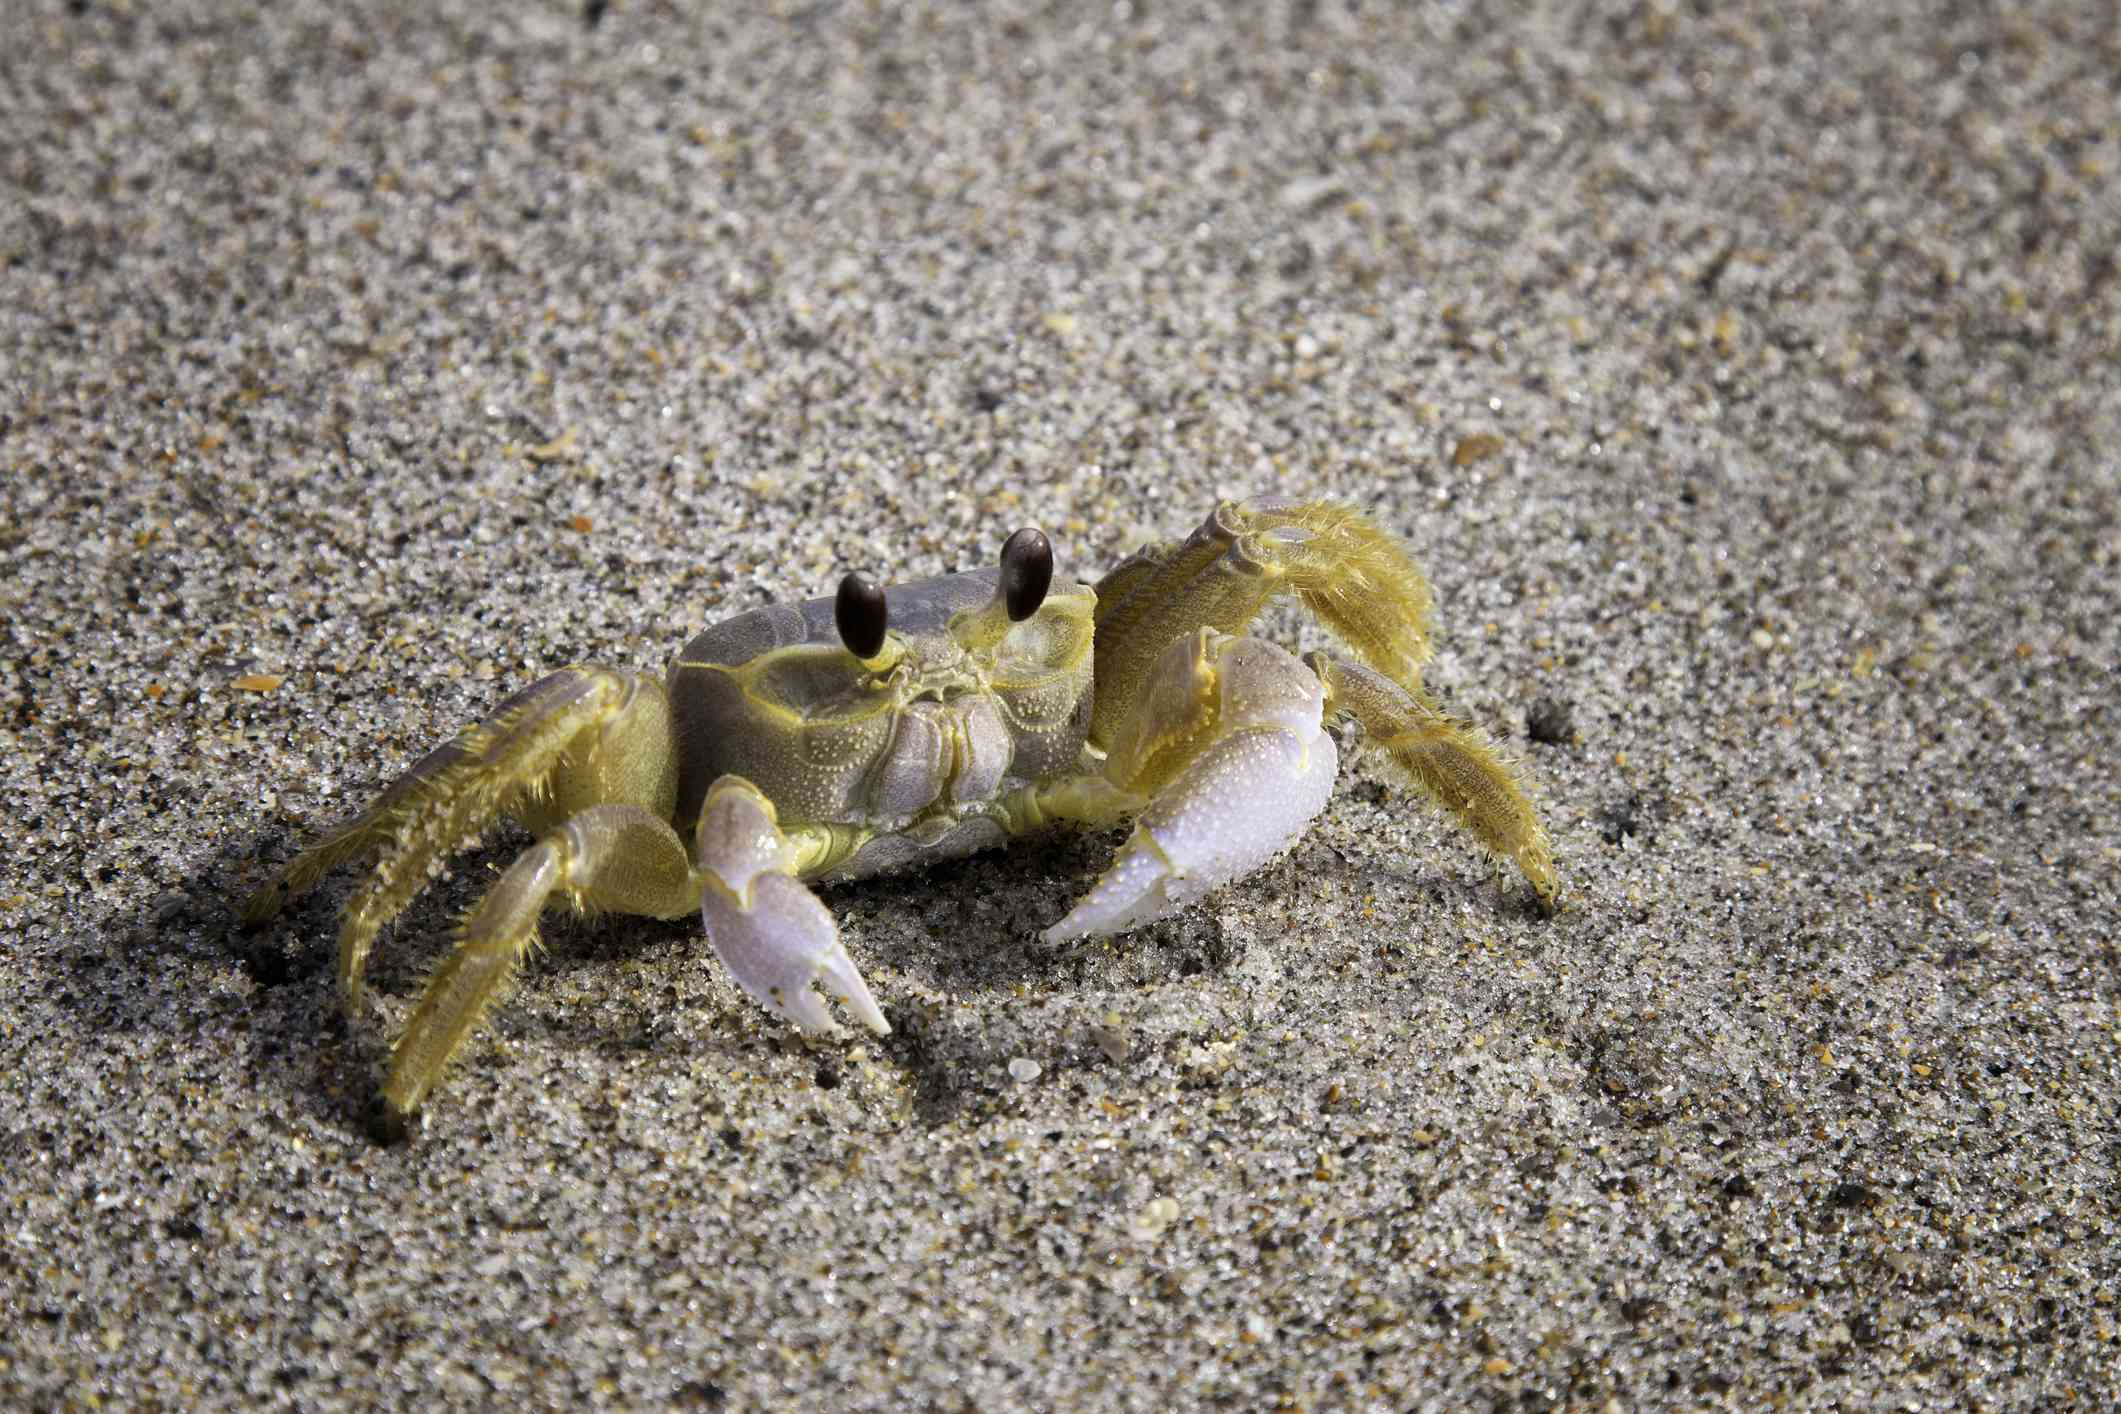 Close up image of Atlantic Ghost Crab on beach in Florida